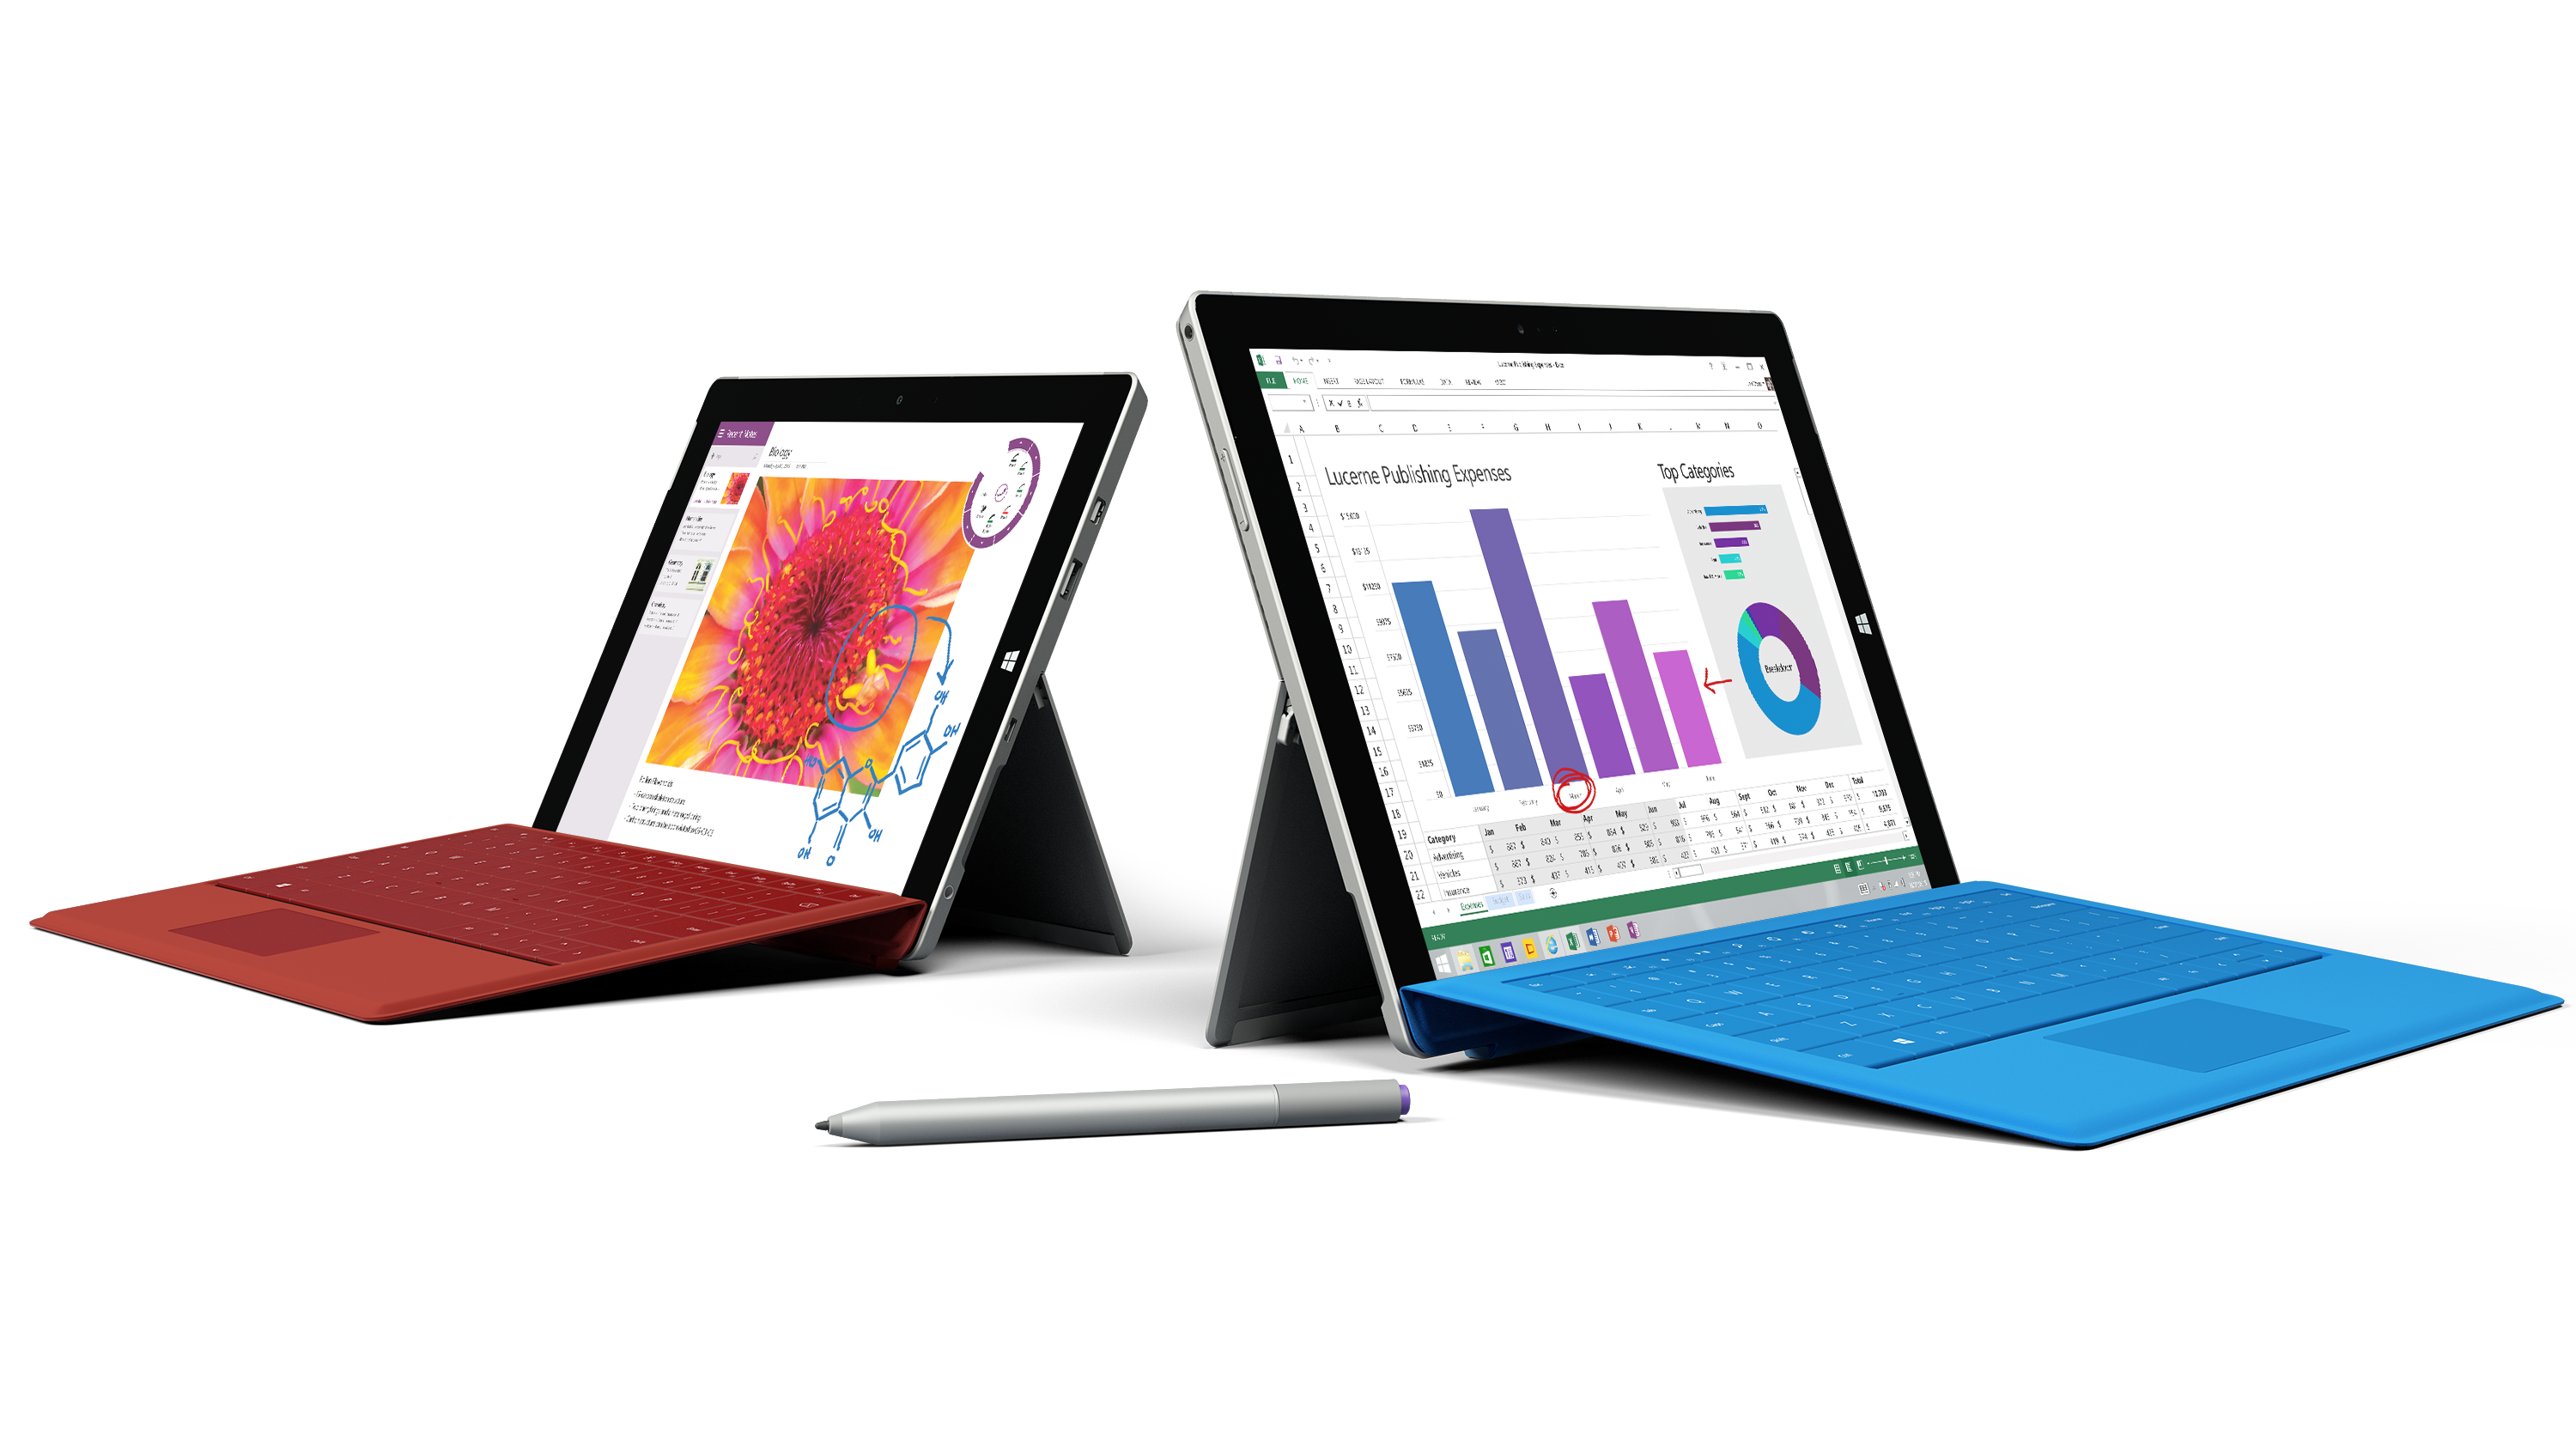 Surface 3 microsoft